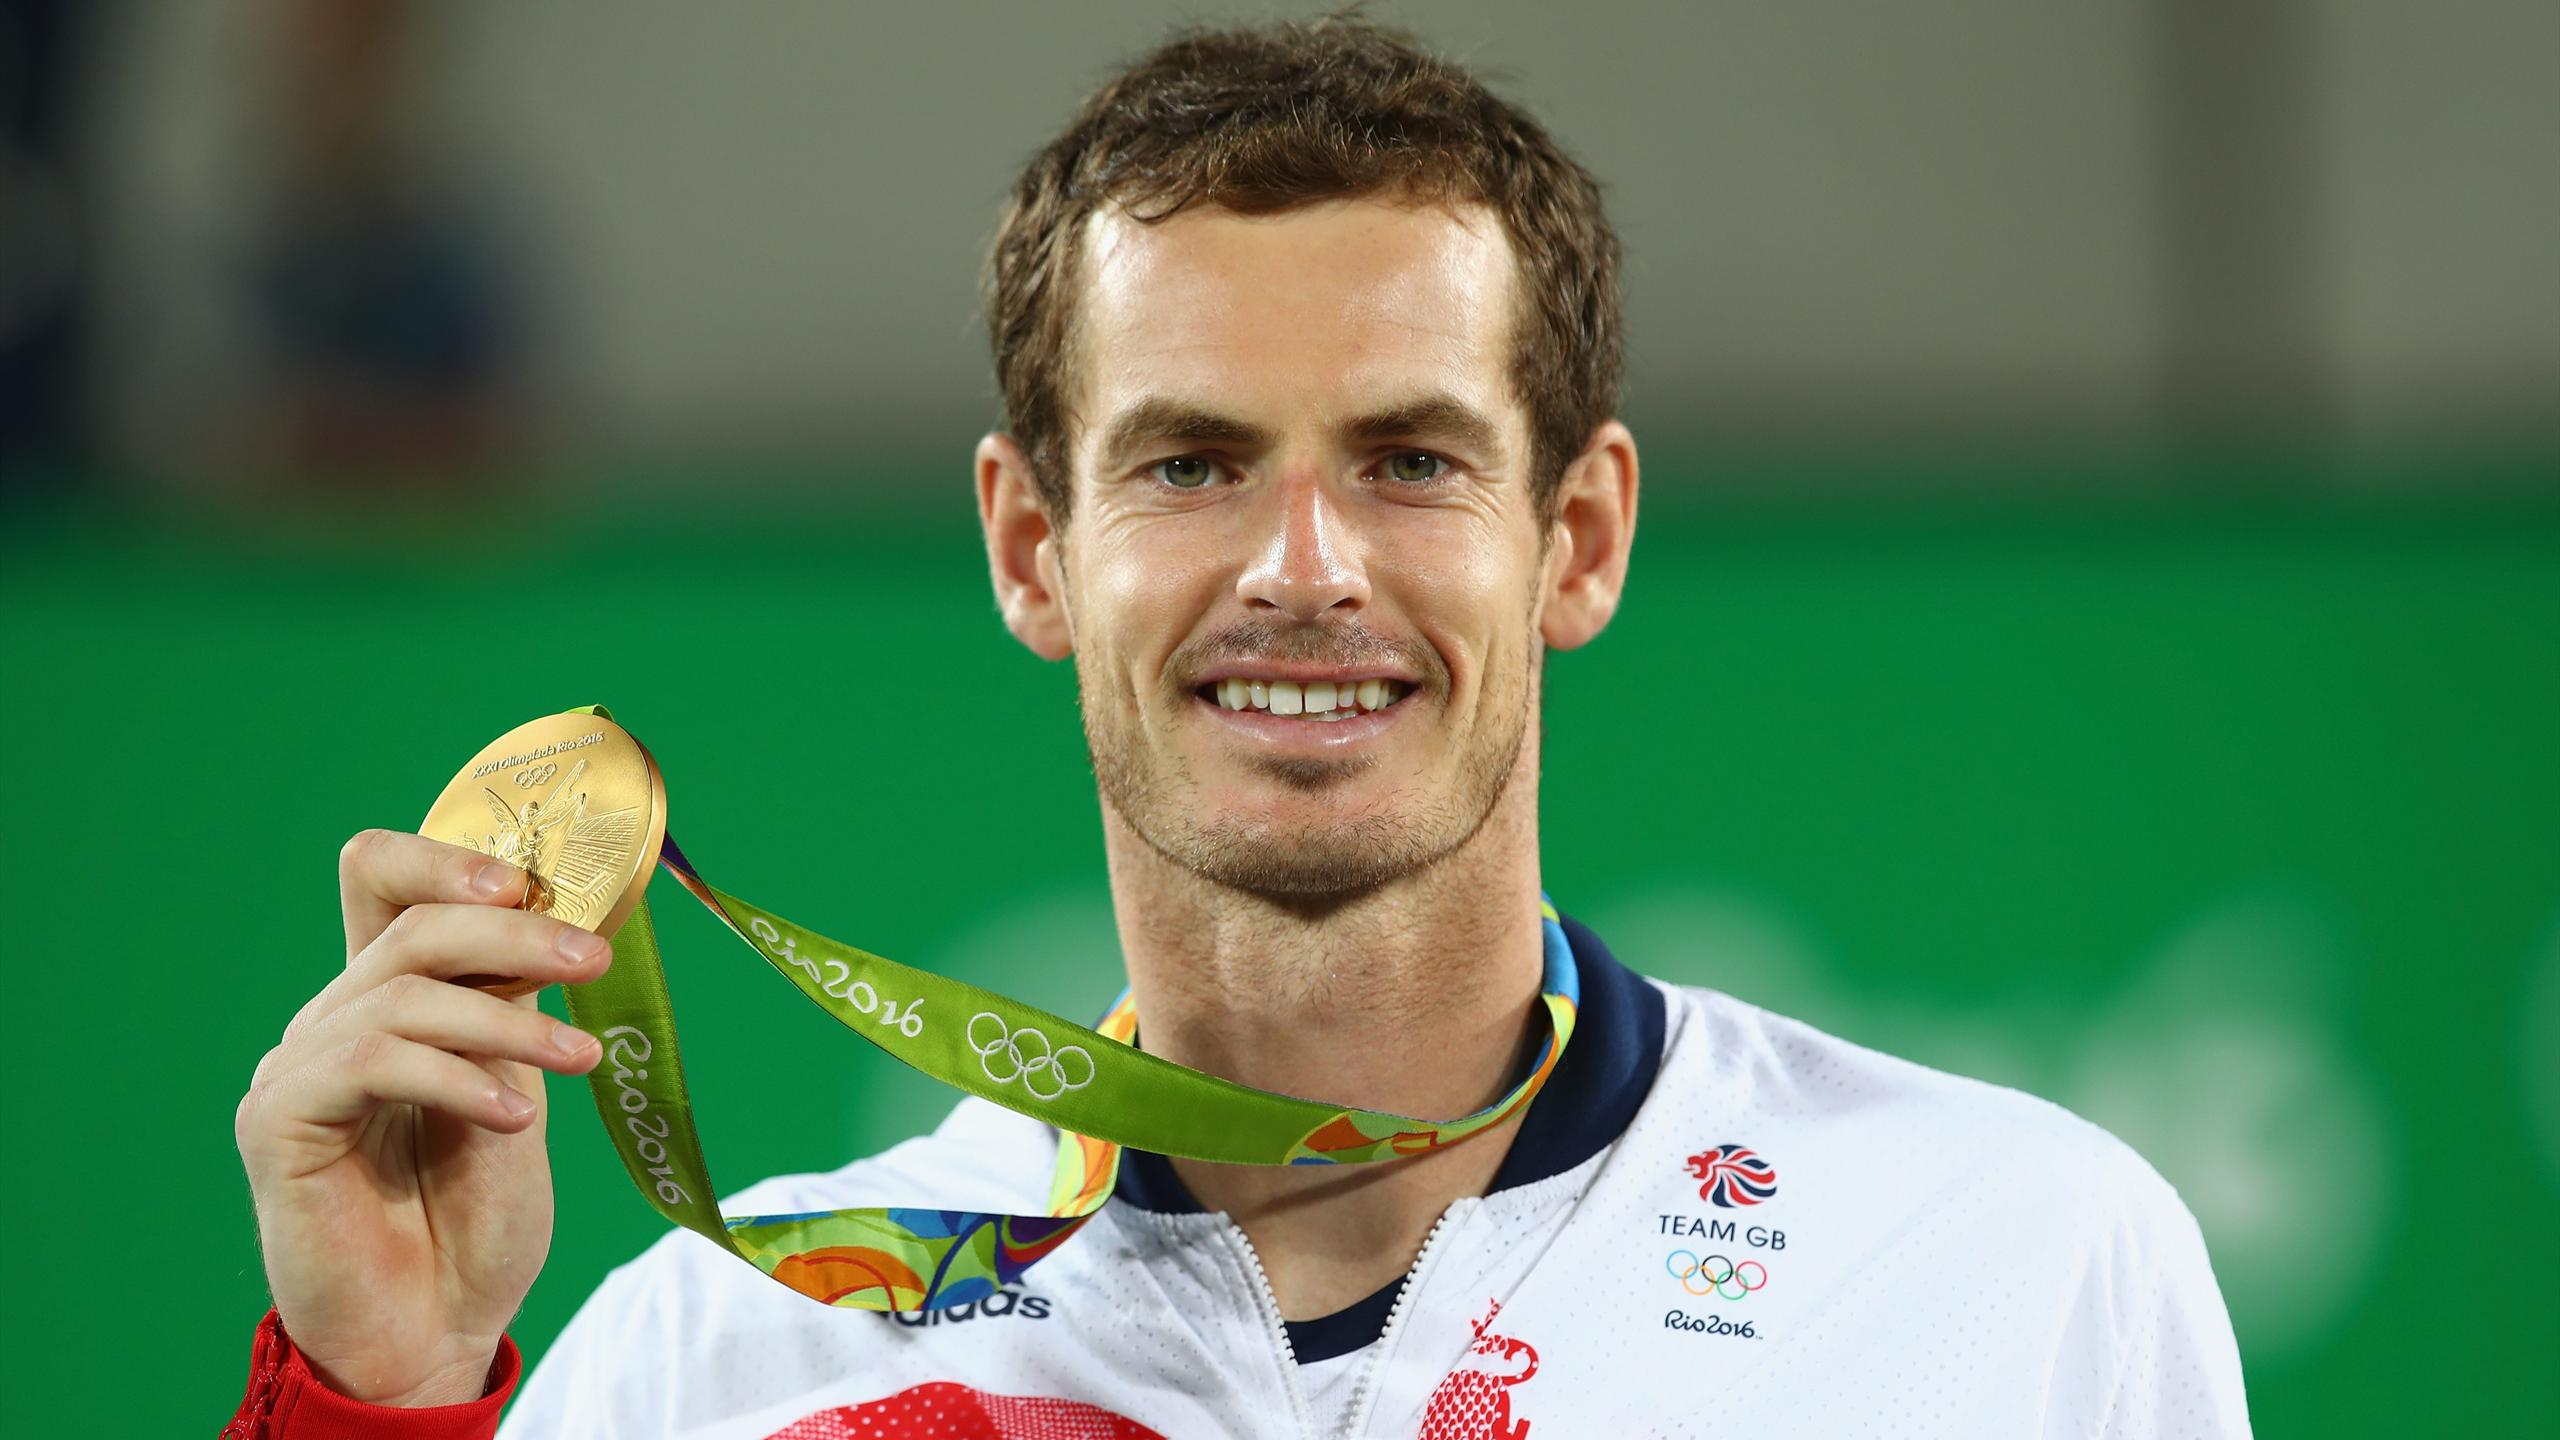 Tokyo Olympics – Who's enjoying tennis? Andy Murray will defend title, Novak Djokovic and Roger Federer uncertain